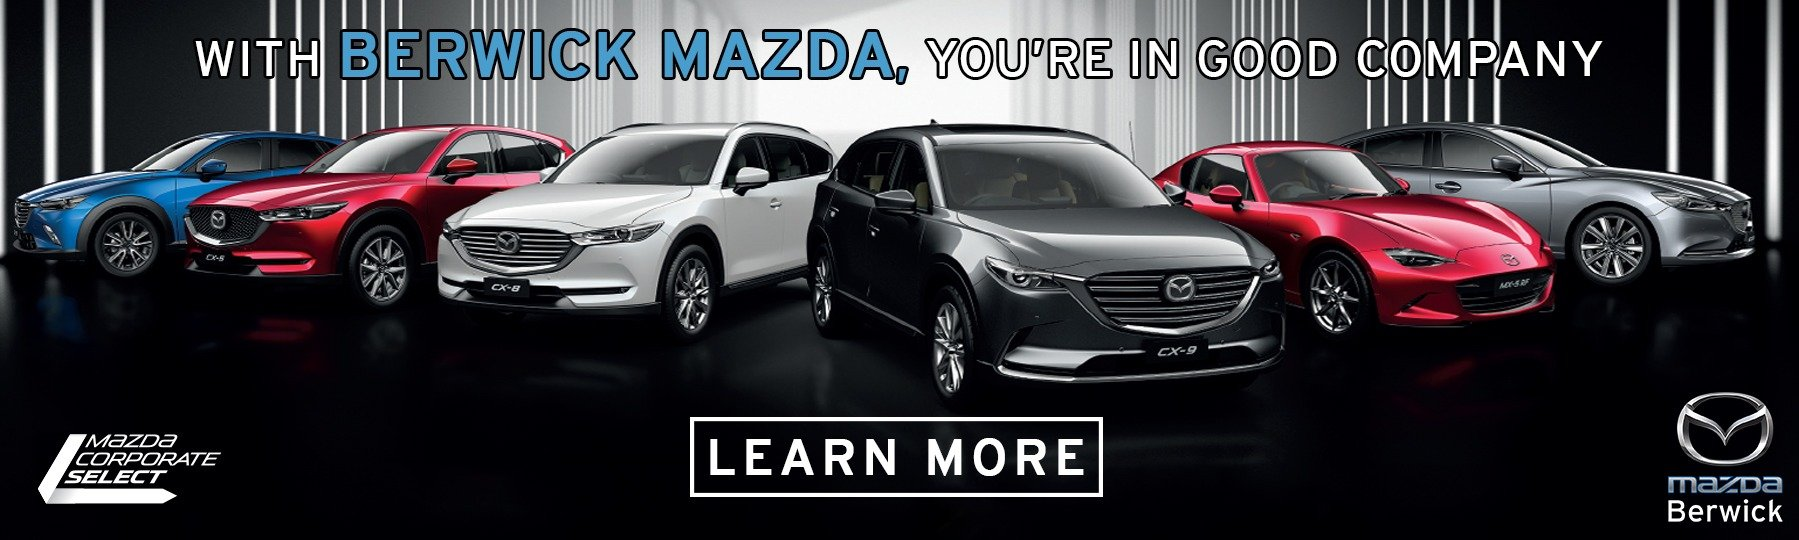 Berwick Mazda: Corporate Select